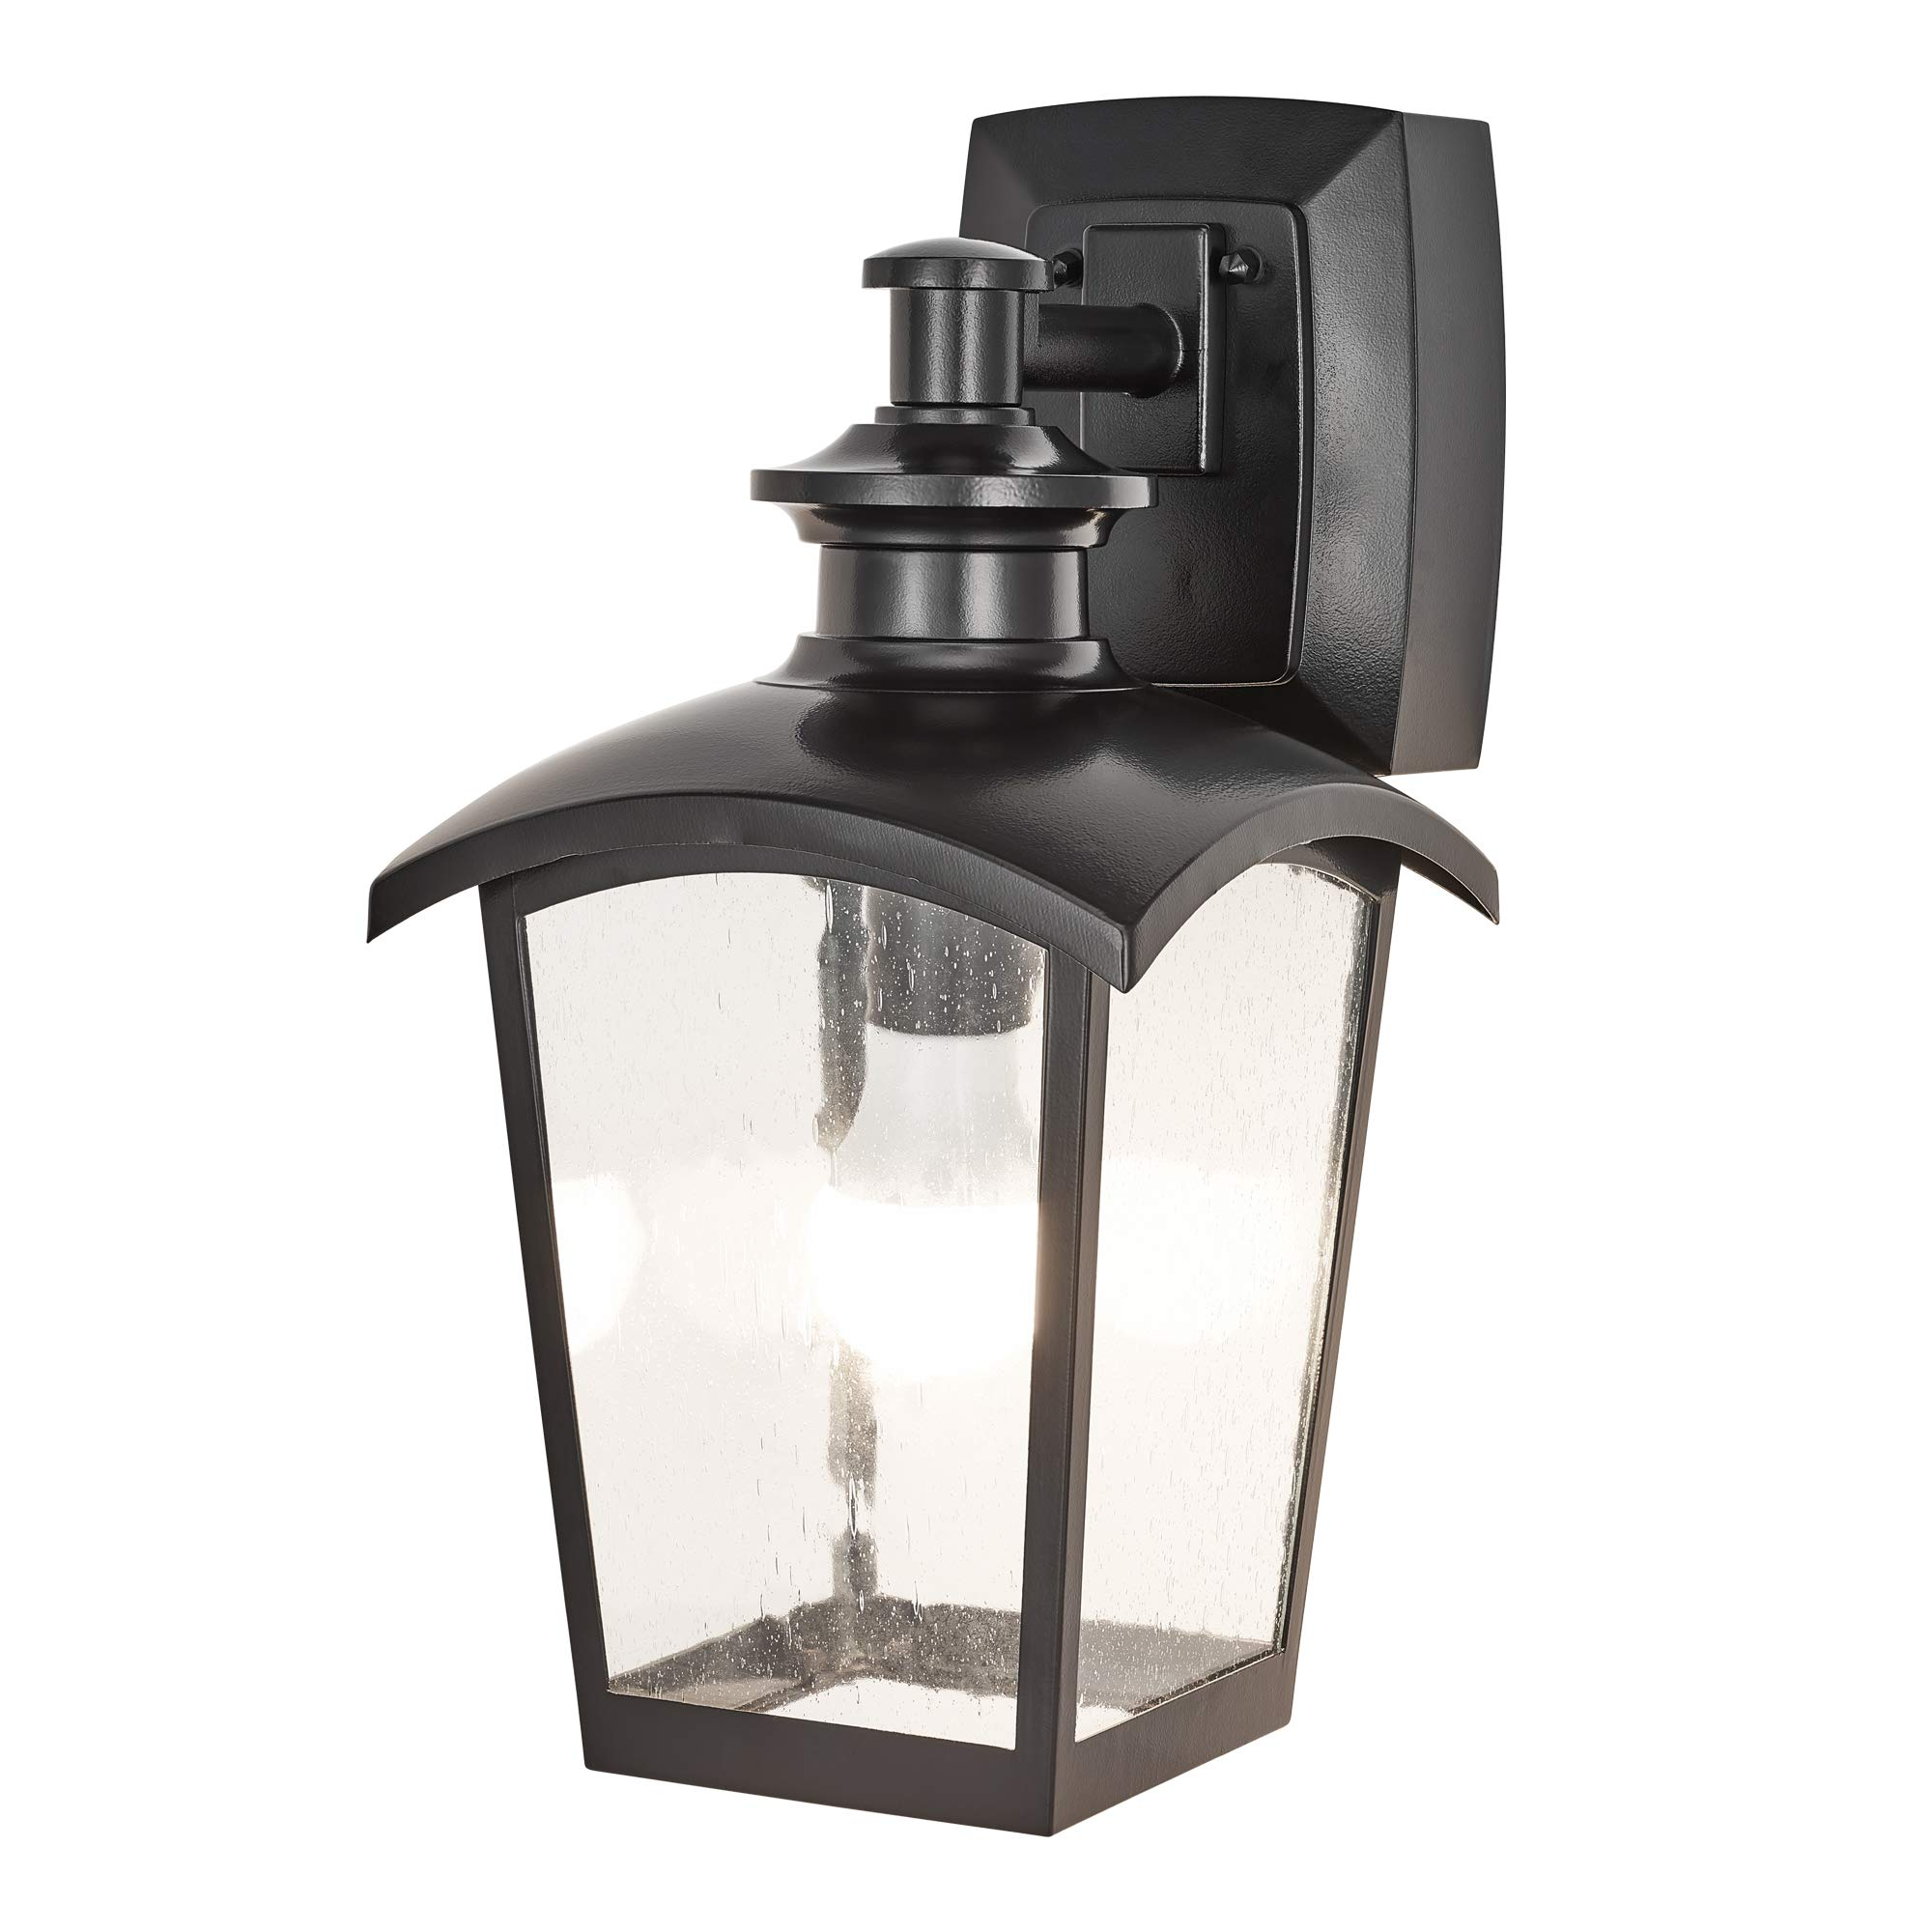 Home luminaire 31703 spence 1 light outdoor wall lantern with seeded glass and built in gfci outlets black